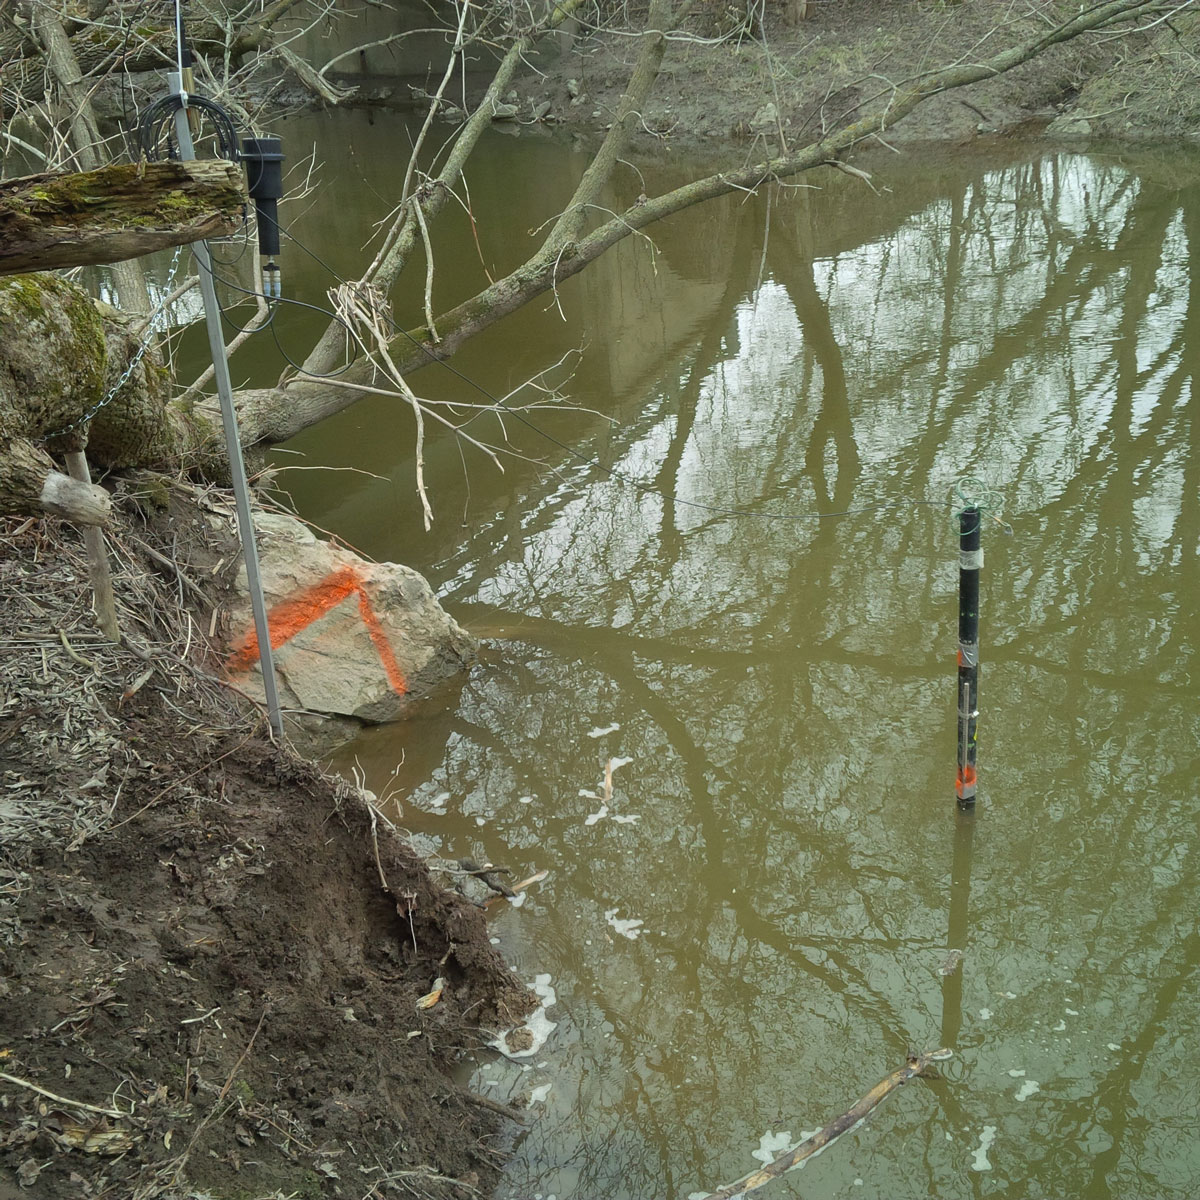 solinst levelsender telemetry system collecting water quality data